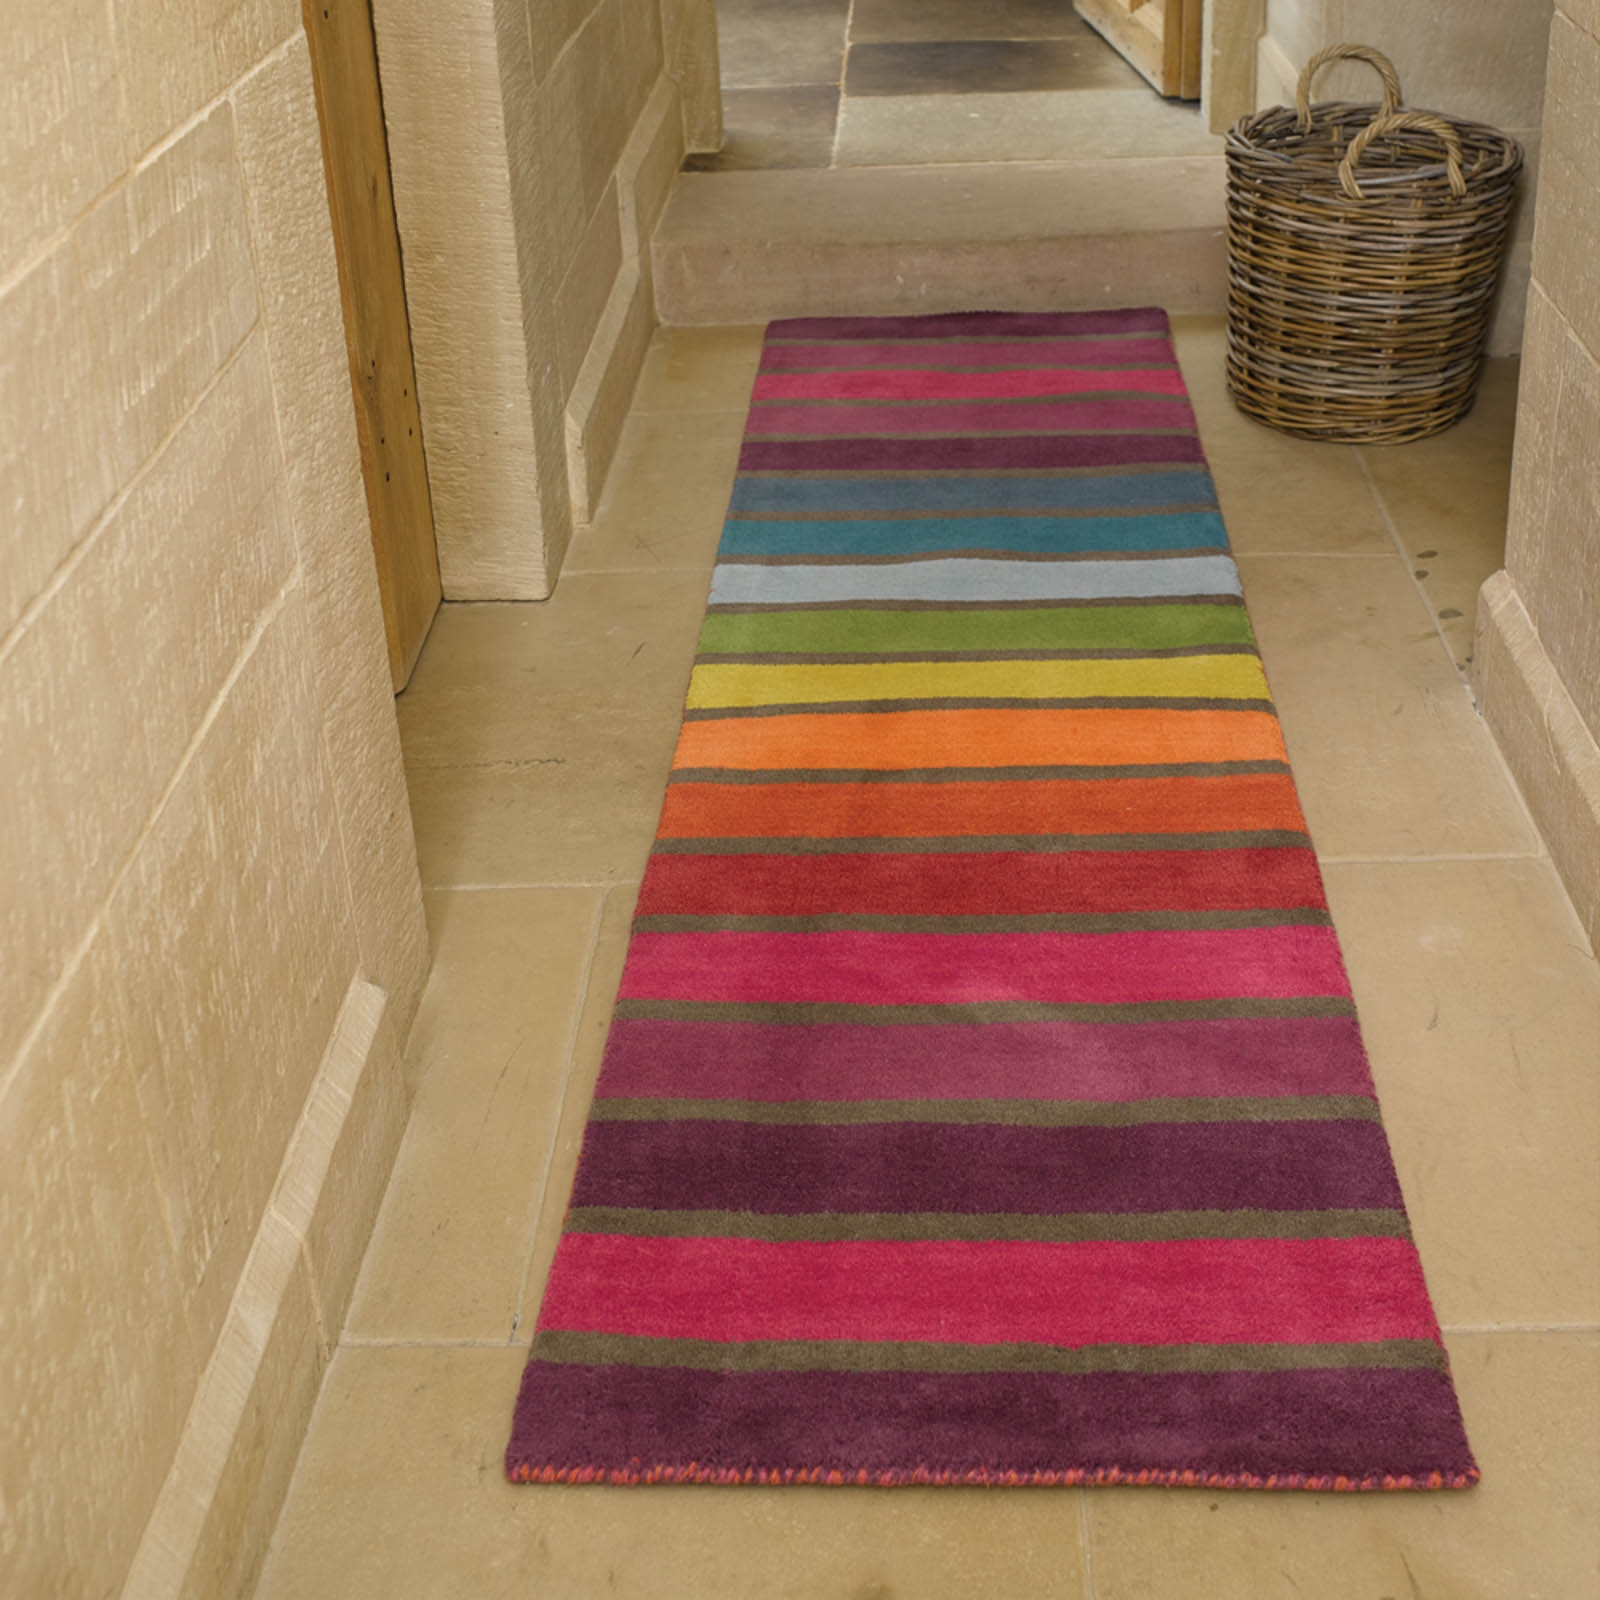 20 Inspirations Of Carpet Runners For Hallway